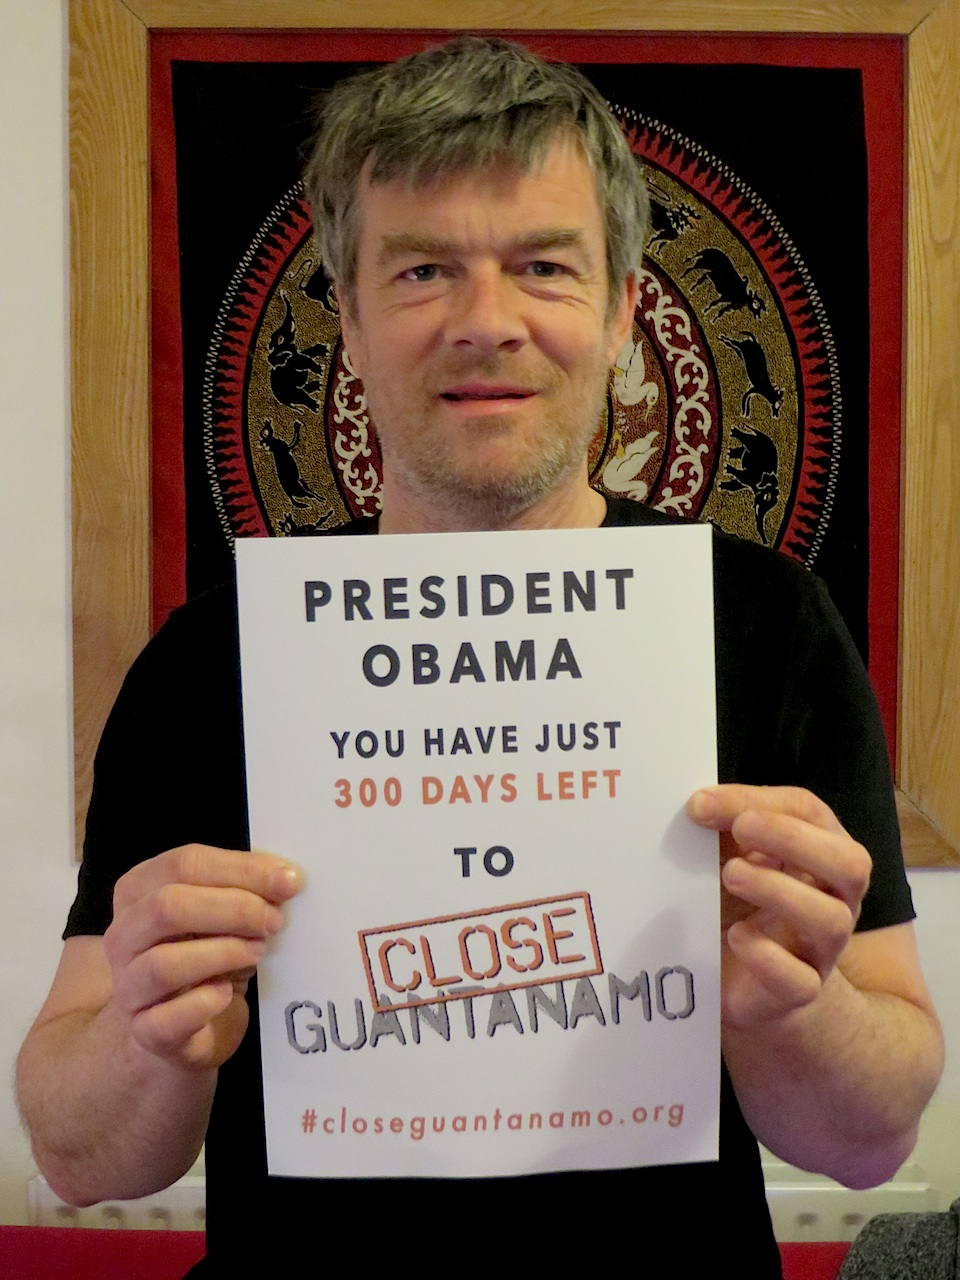 Andy Worthington promotes the latest phase of the Countdown to Close Guantanamo, pointing out to President Obama that he has just 300 days left to close Guantanamo, as he promised on his second day in office in January 2009.